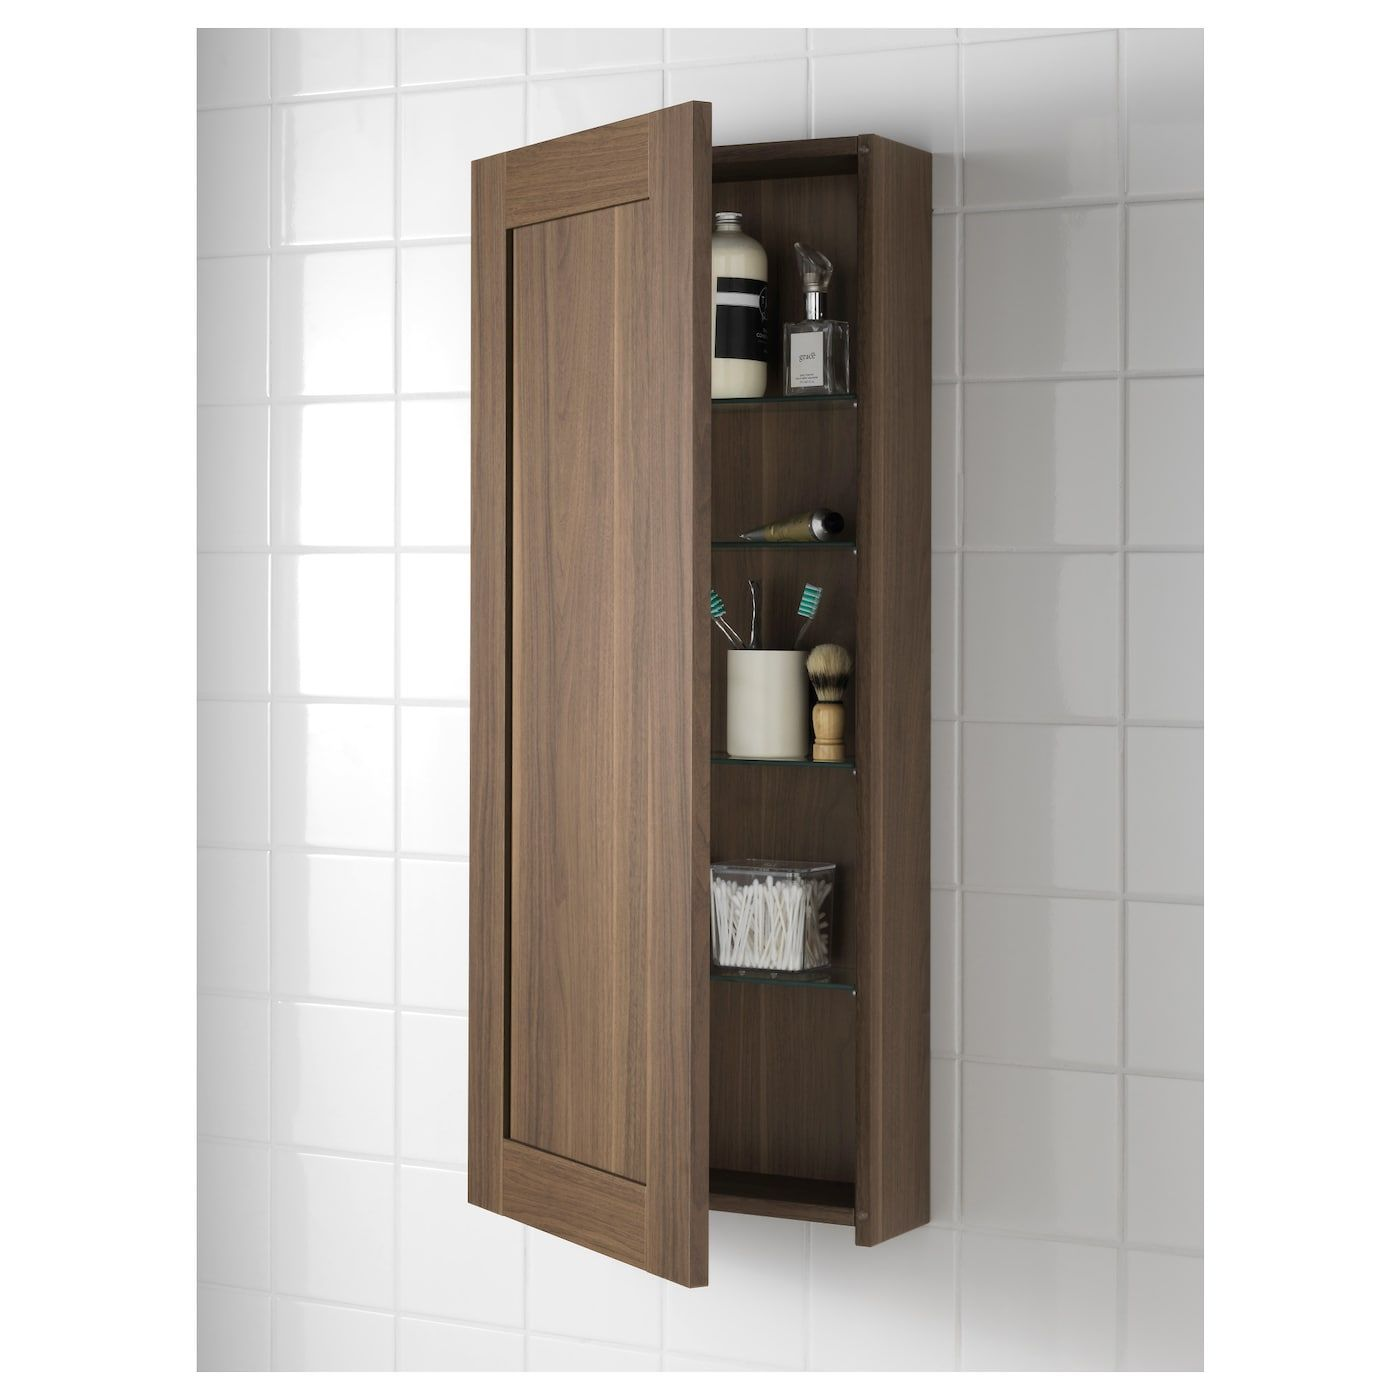 Wall Storage With Doors Godmorgon Wall Cabinet With 1 Door Walnut Effect Walnut Wallstorage W Bathroom Wall Cabinets Bathroom Wall Storage Wall Cabinet